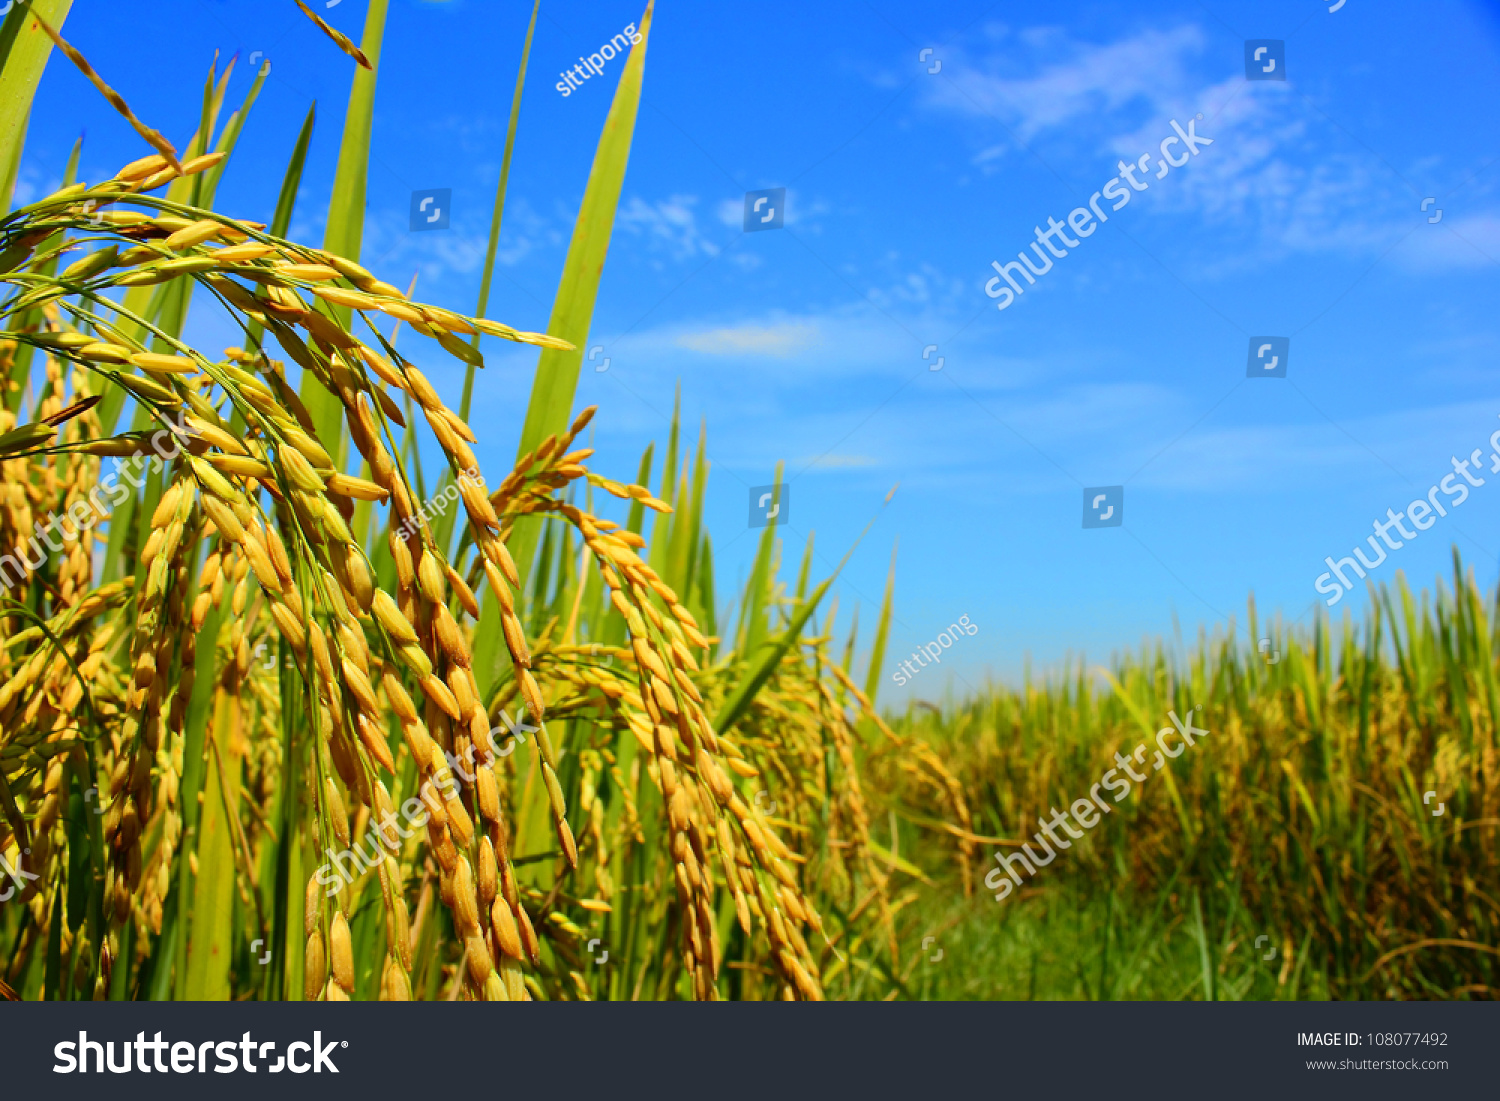 thesis on pesticide Problems with use of pesticides an environmental sciences essay for the good of the pest control is required the published on the uk essays website then.